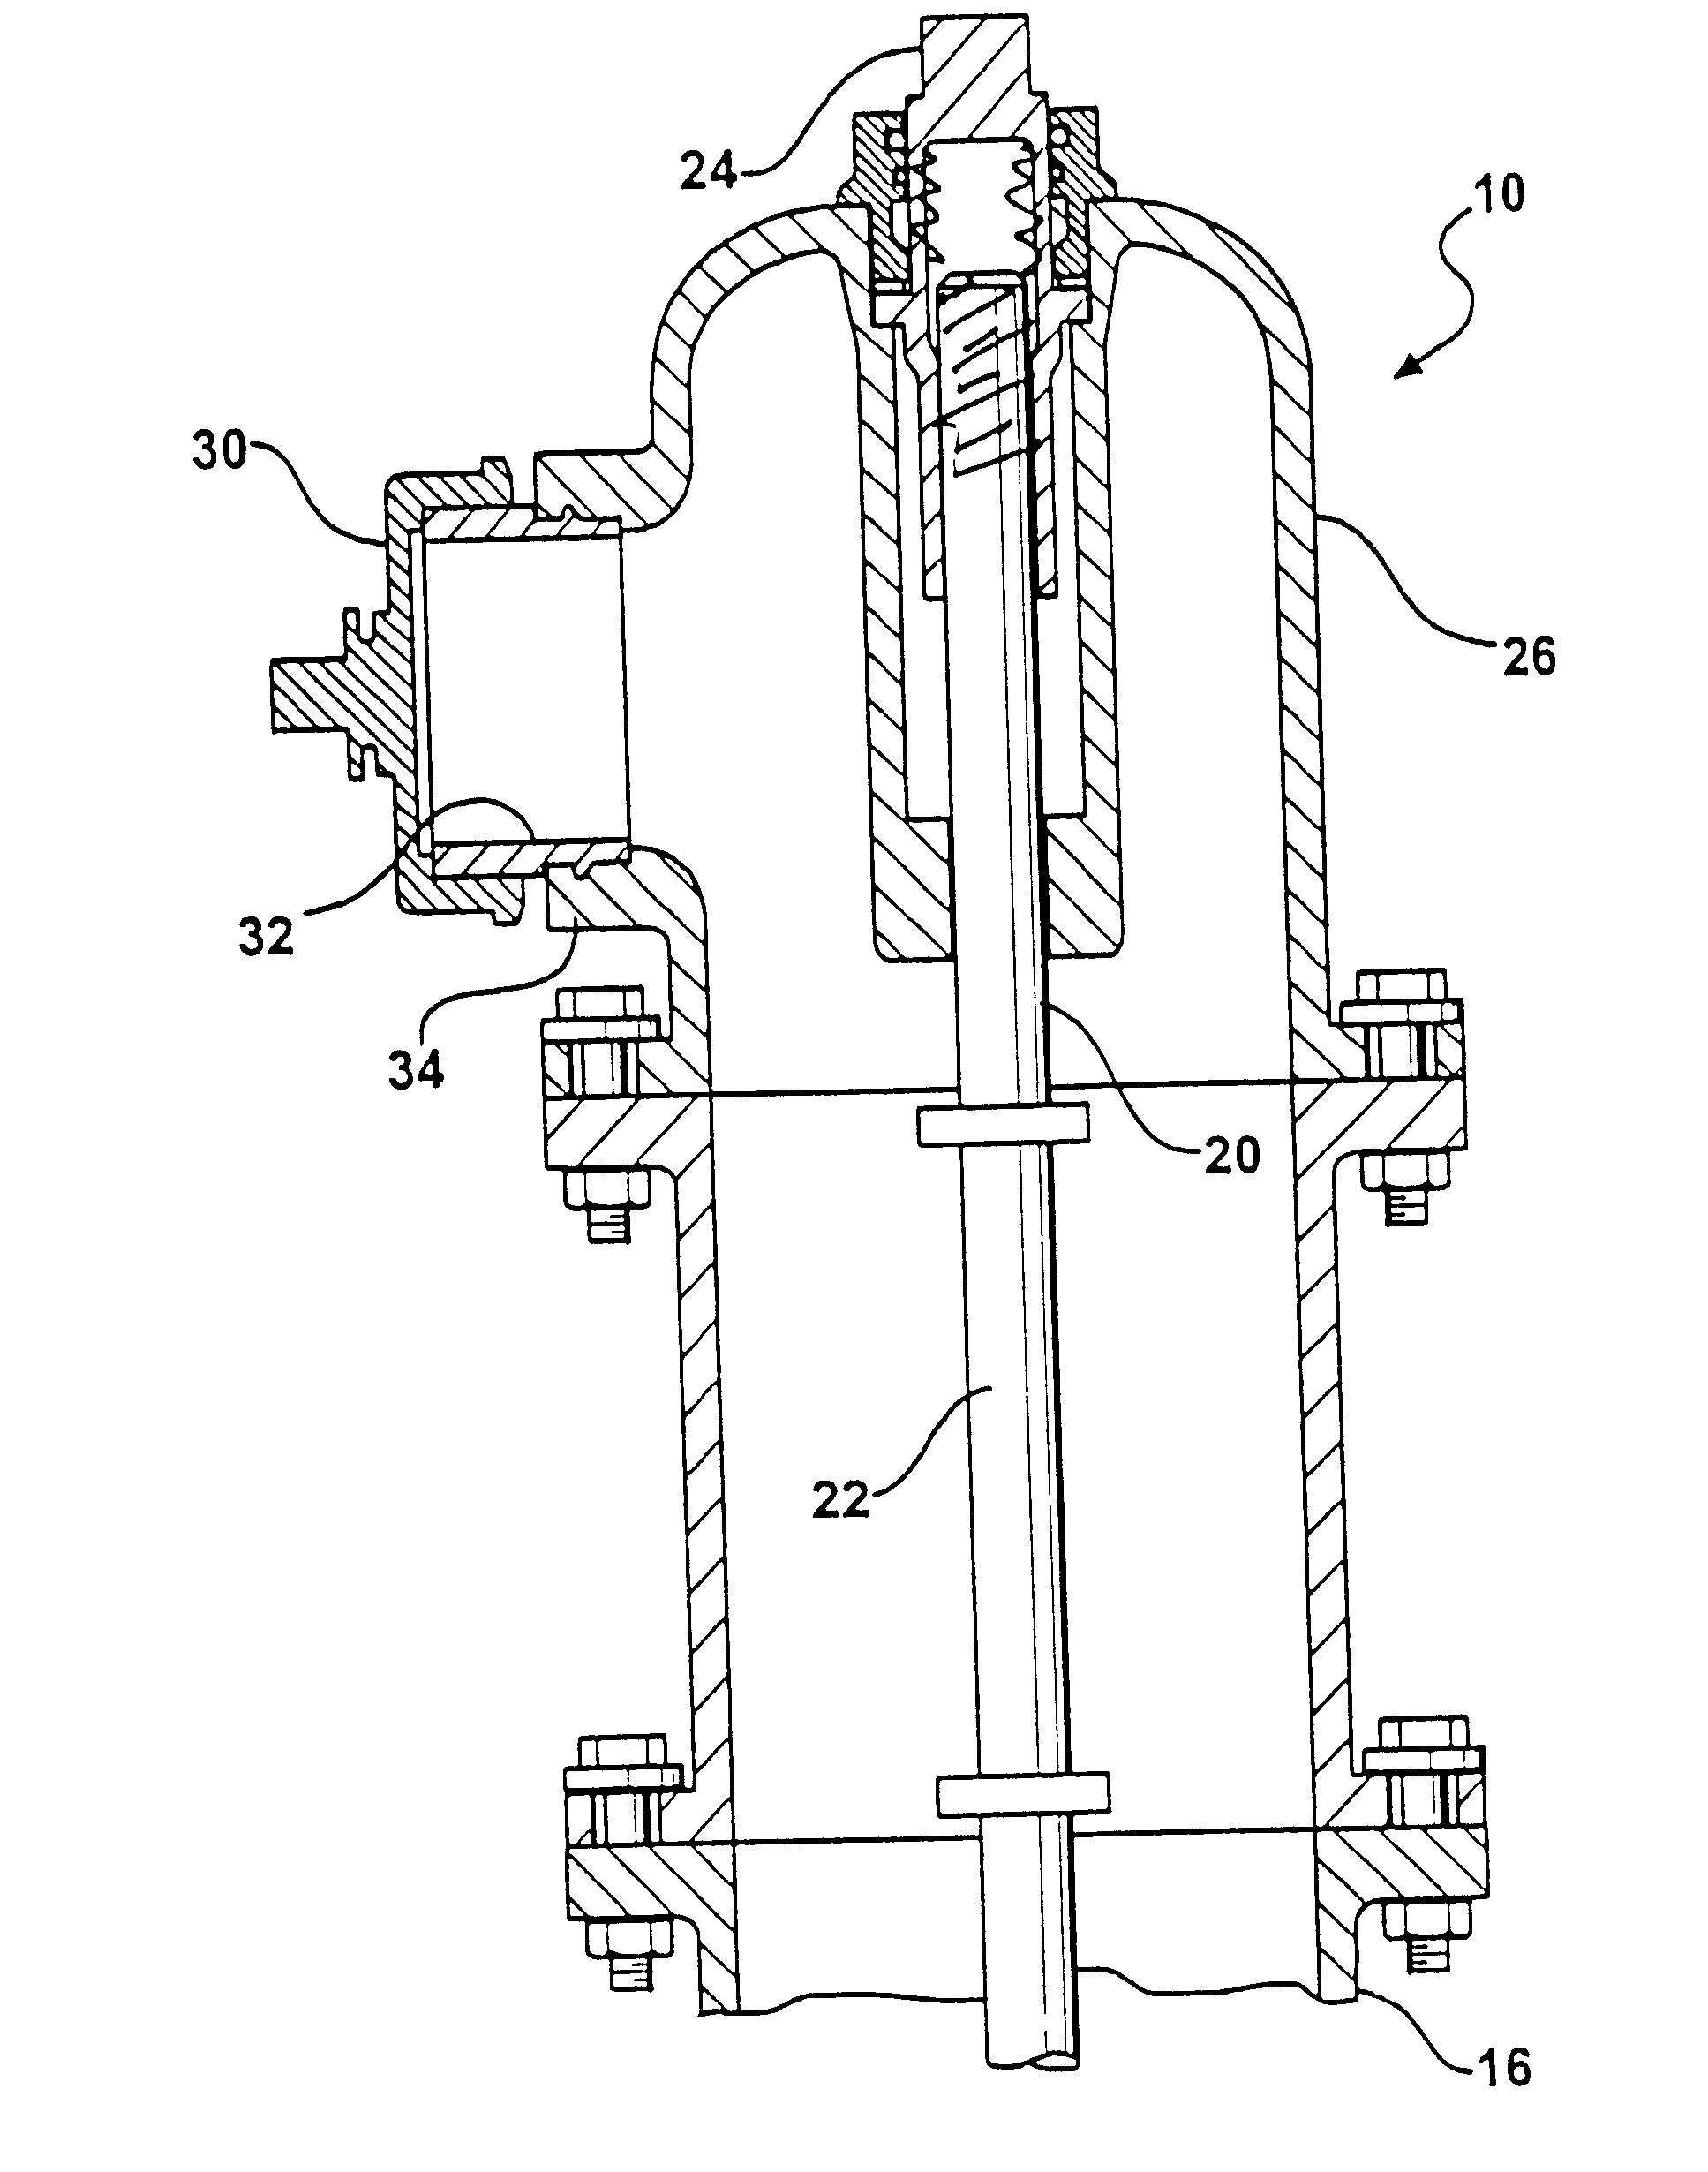 Dry Contact Schematic